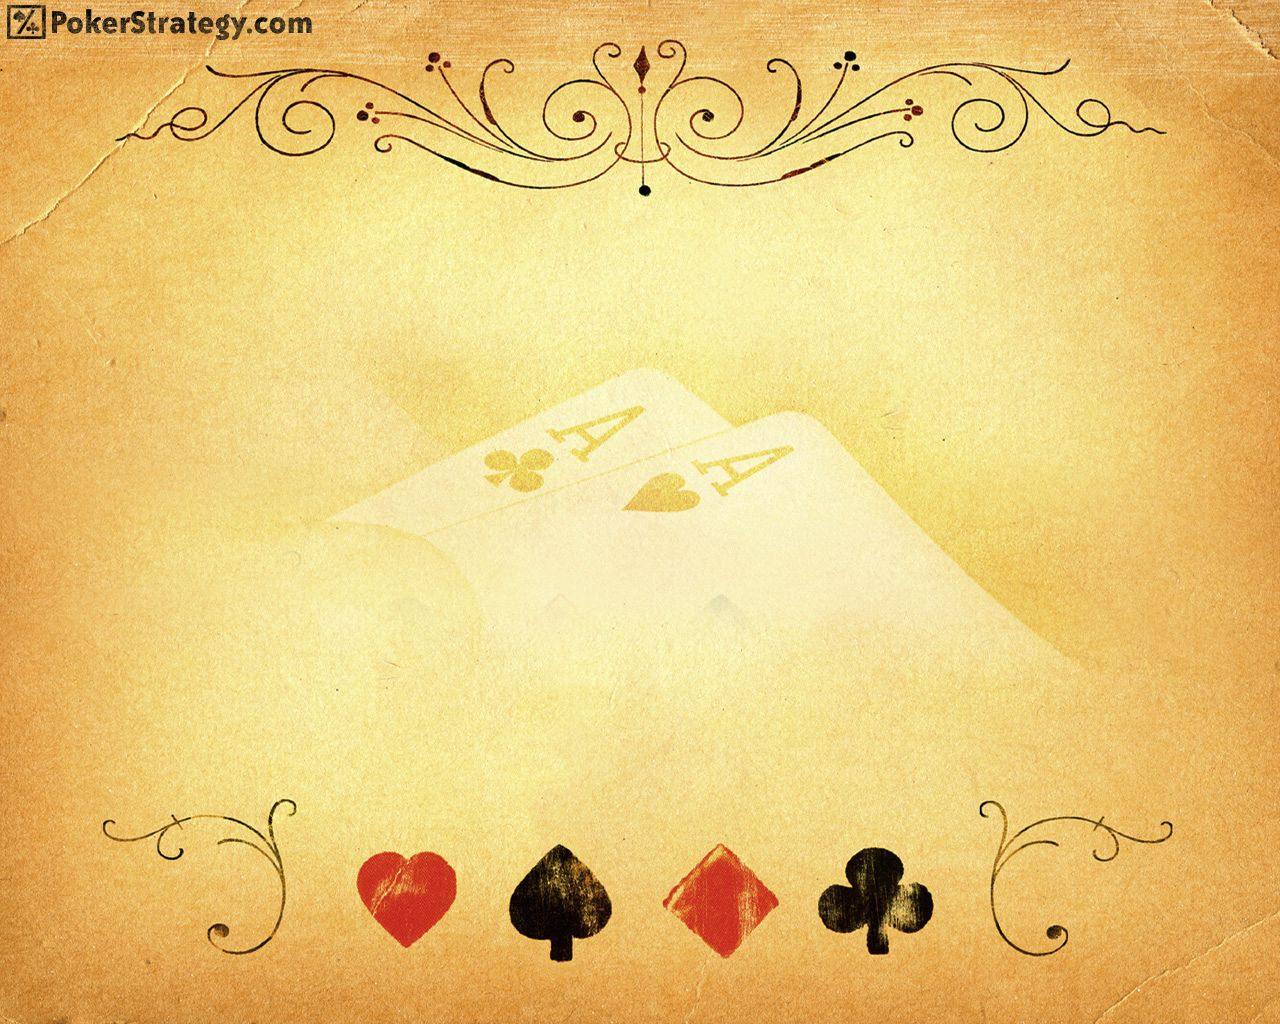 Funny Animated Hd Wallpapers Ⓦallⓟapers Sfondi Poker